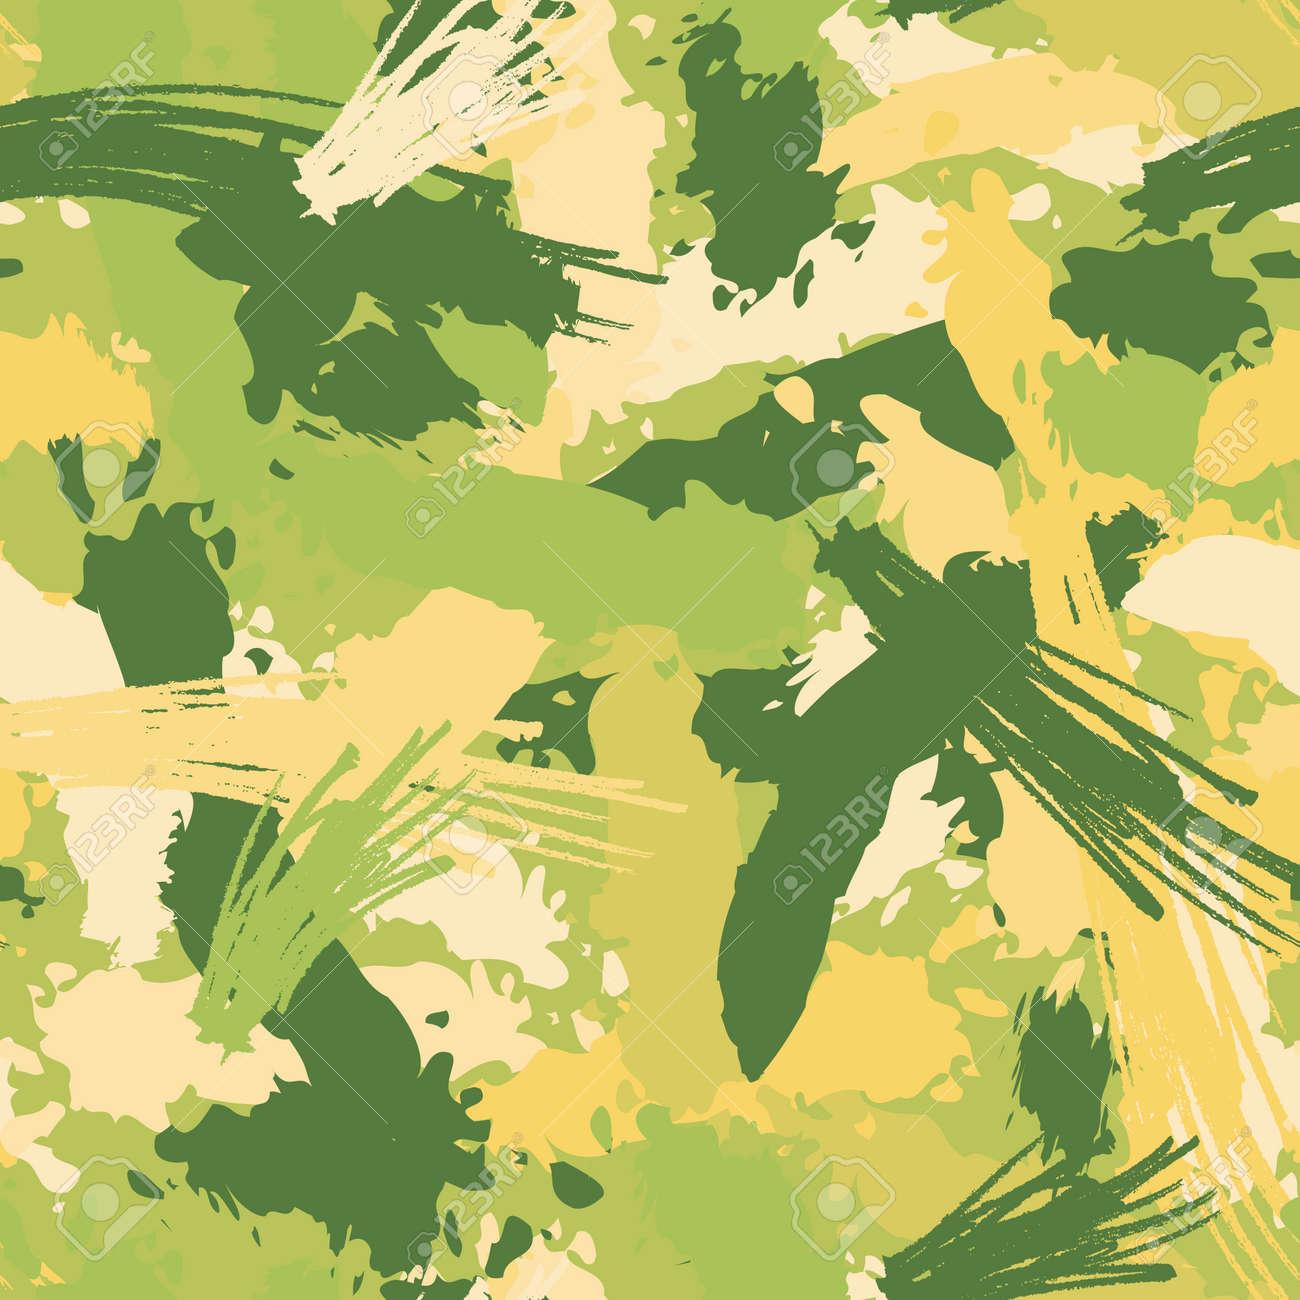 Seamless repeating pattern of multicolored paint strokes - 169048956